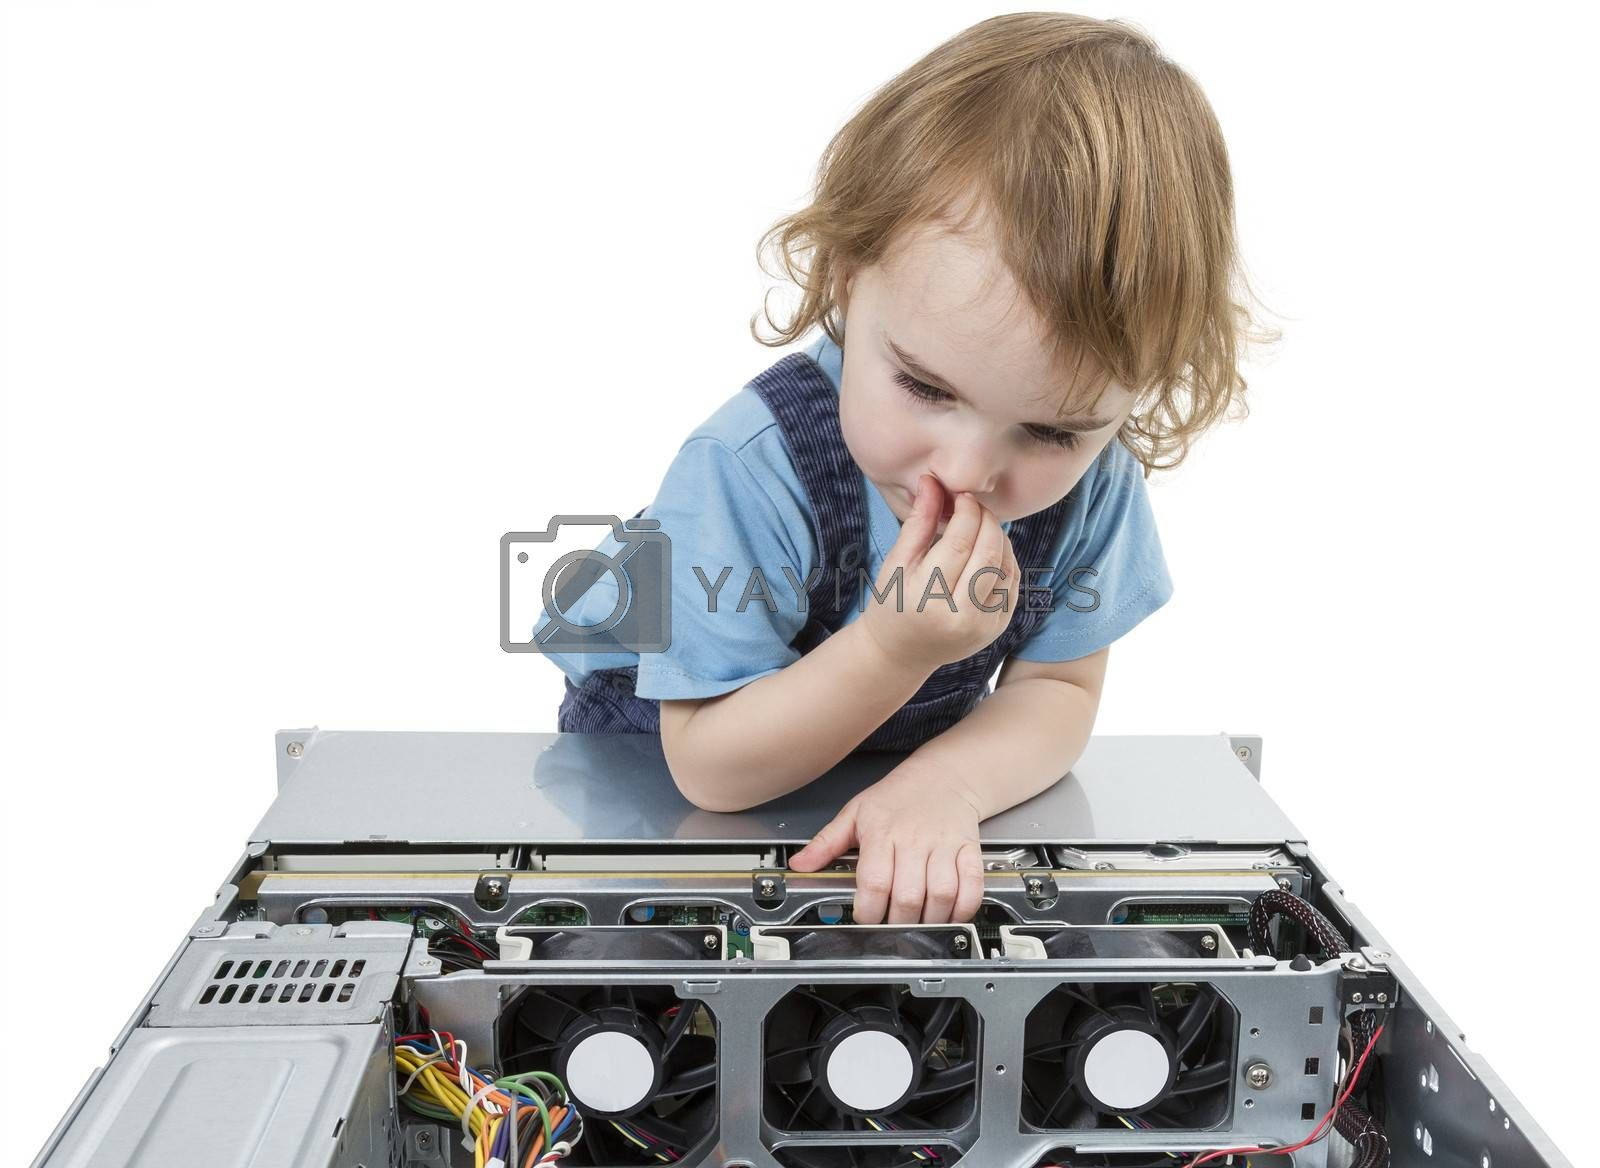 cute child with open network server. studio shot in light grey background